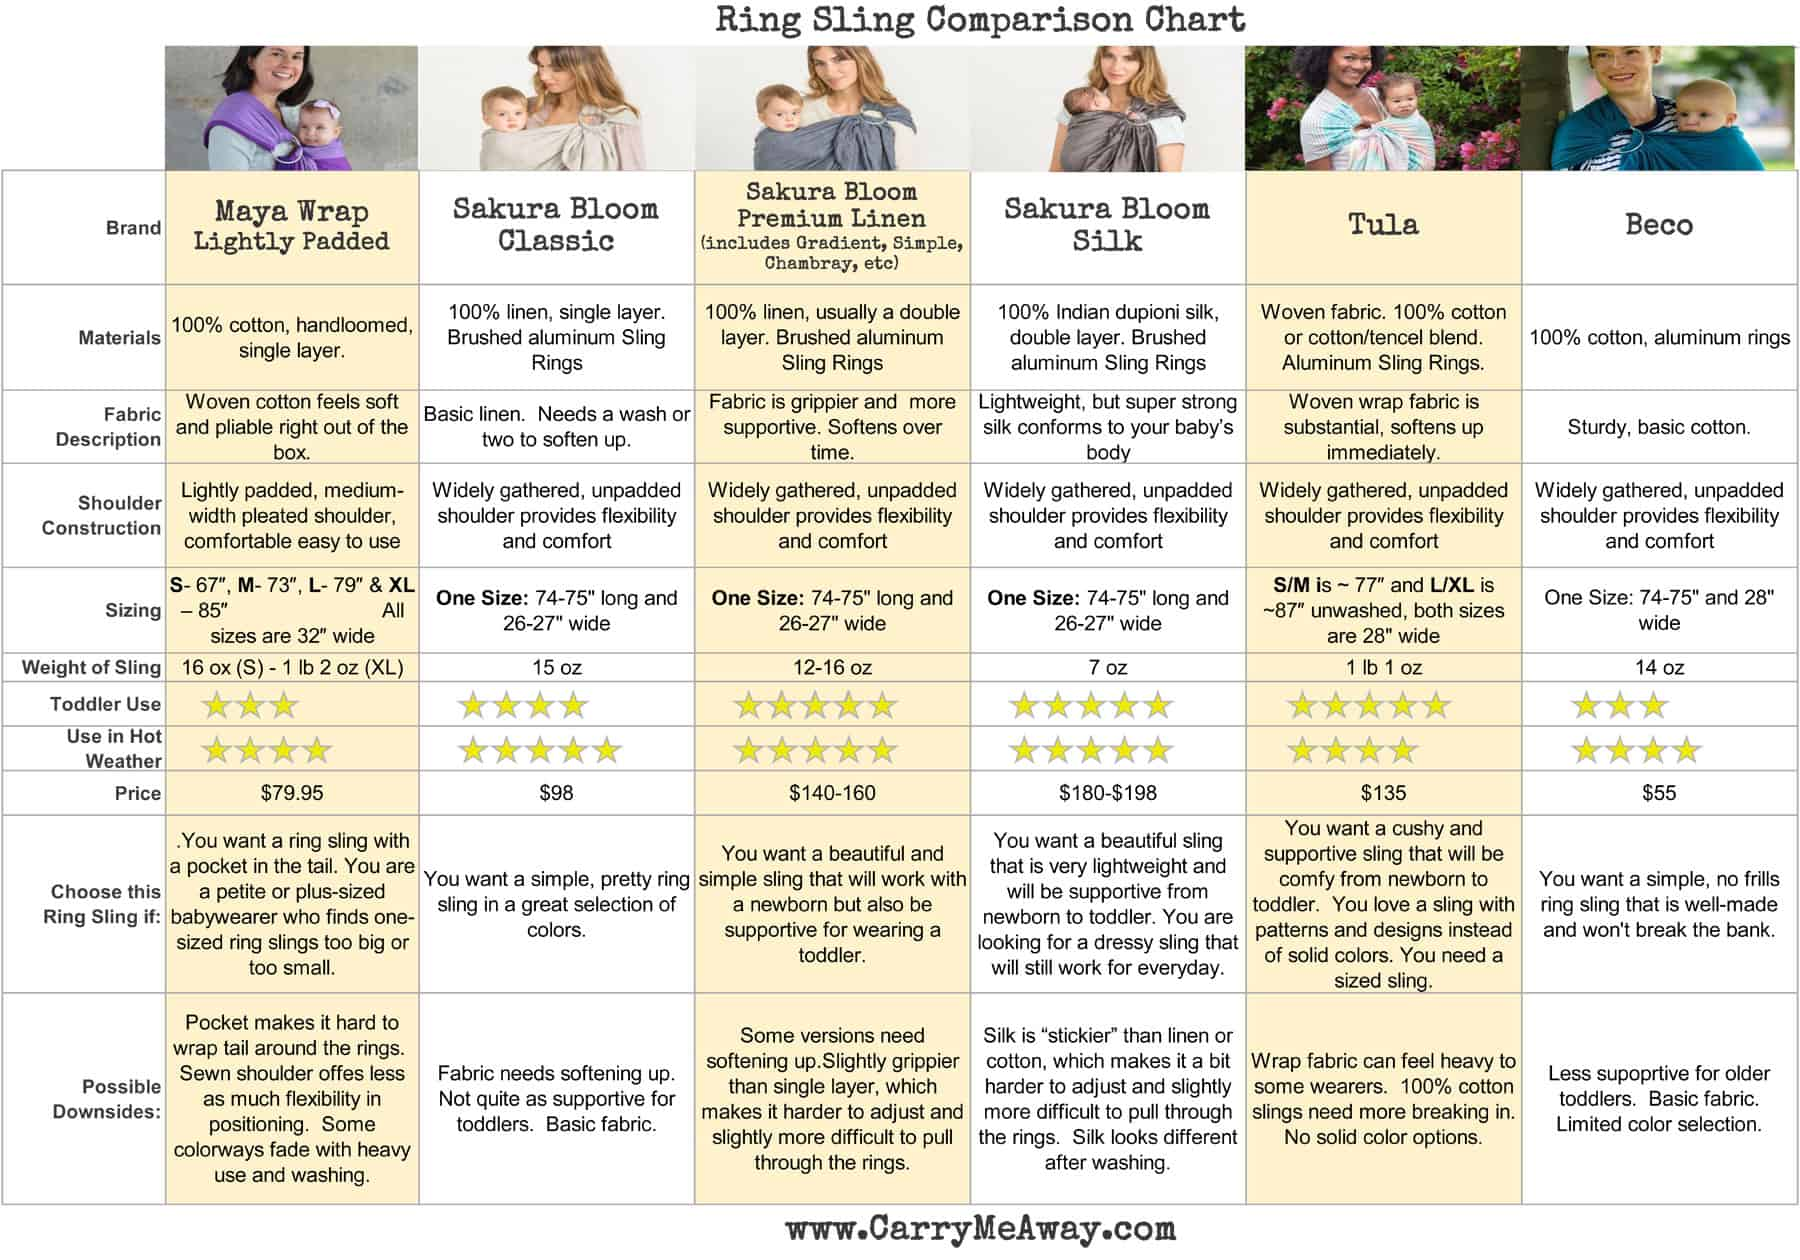 Ring sling comparison chart maya wrap vs sakura bloom carry me away maya wrap sakura bloom tula ring sling beco ring sling ring sling nvjuhfo Image collections